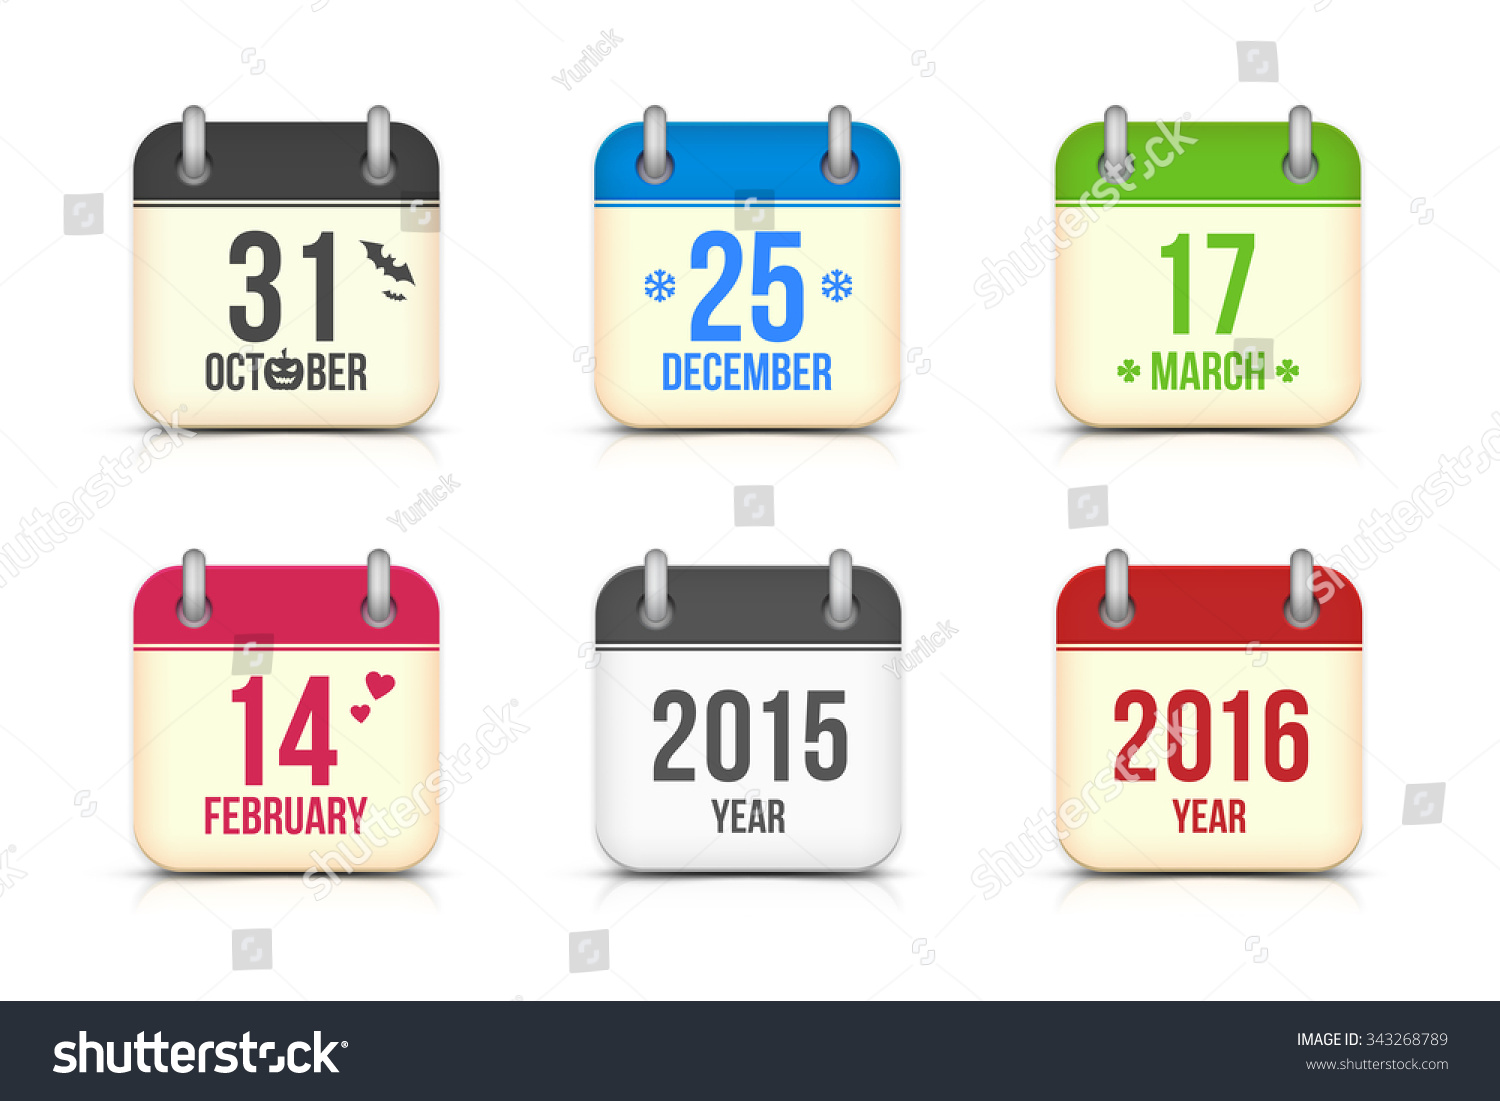 set app icons halloween christmas 2016 stock illustration what day is halloween this year 2016 - Halloween Date This Year